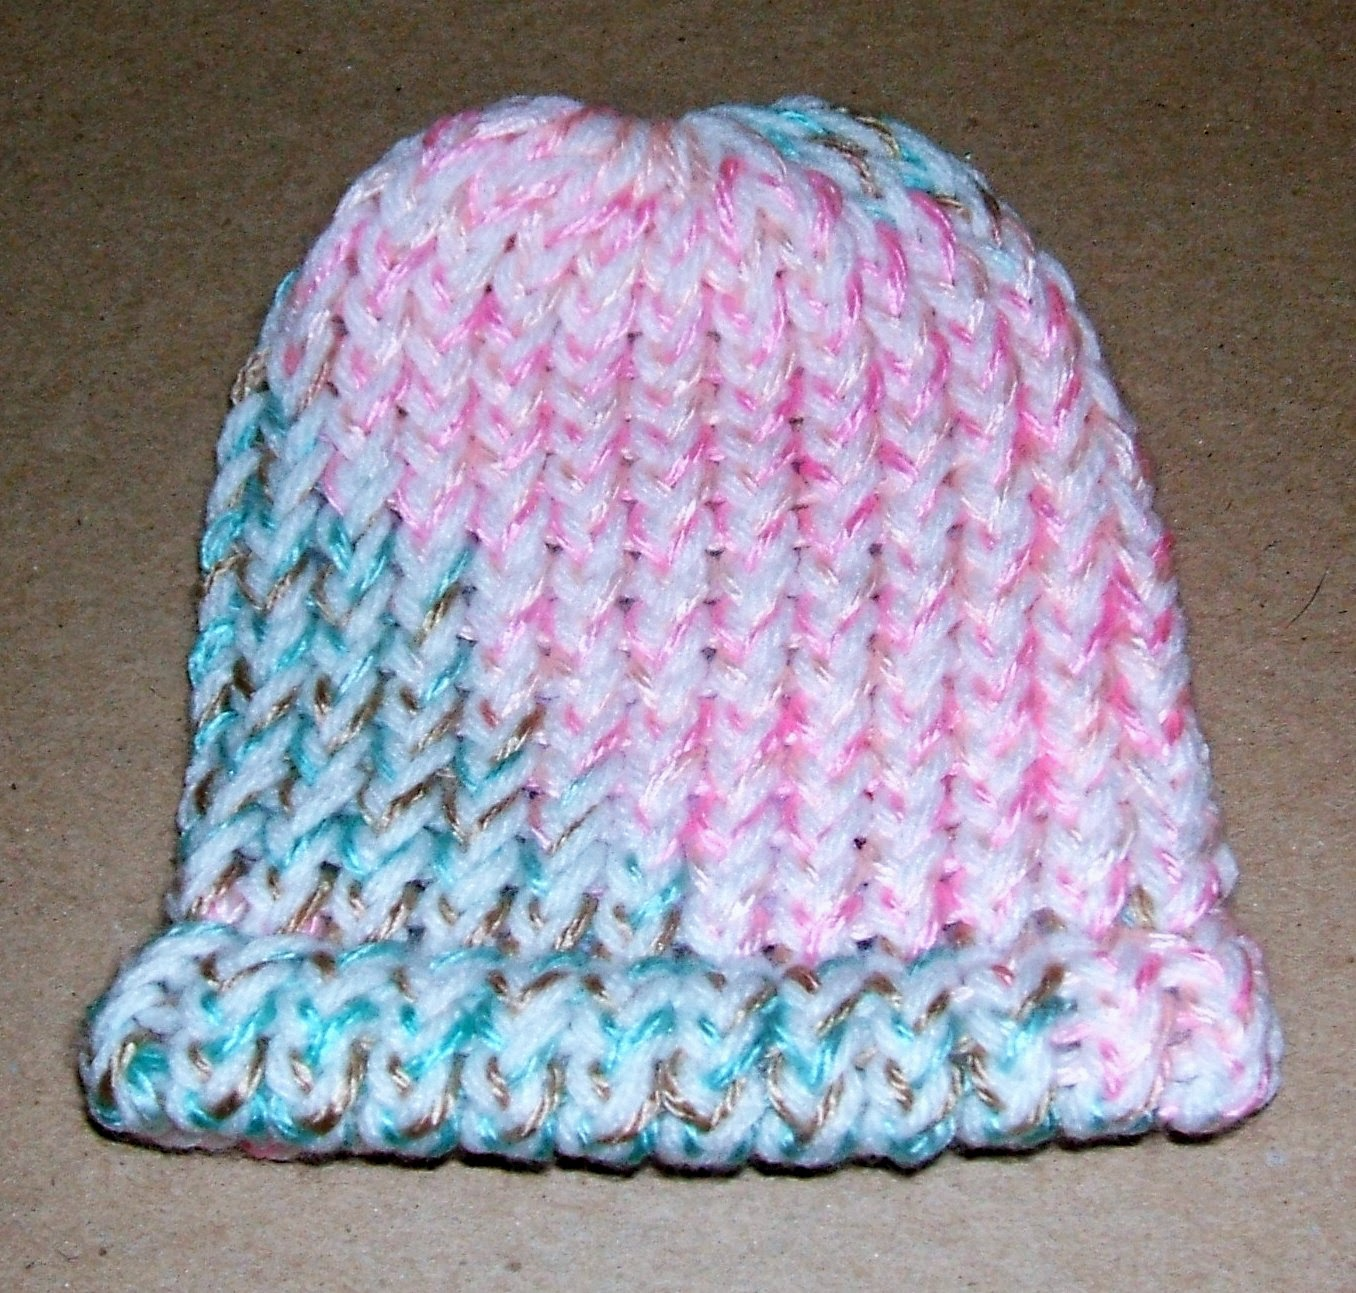 Knitting Loom Patterns Baby Hats : Yolandas Creations: Crochet hats for everyone...